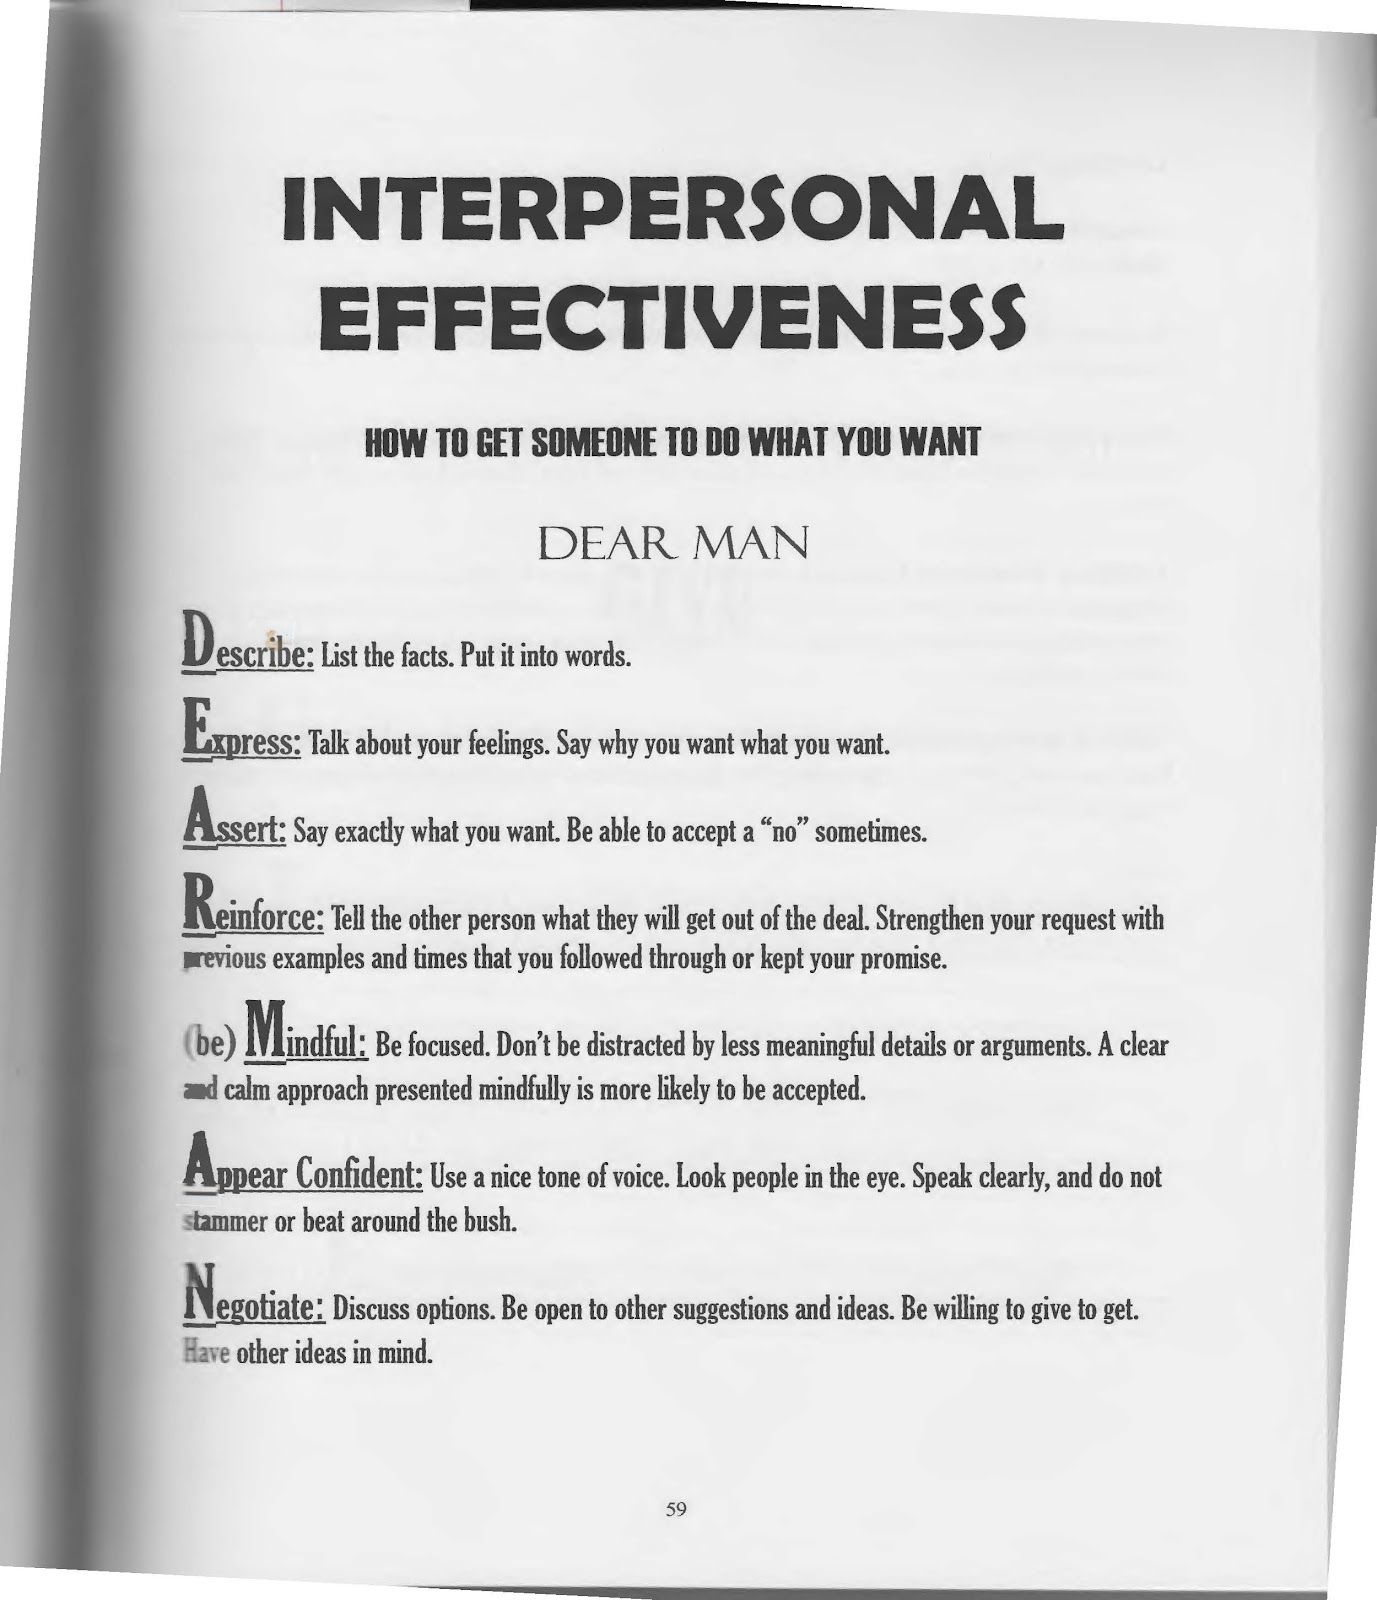 worksheet Art Therapy Worksheets the art of dialectical behavior therapy interpersonal effectiveness effectiveness